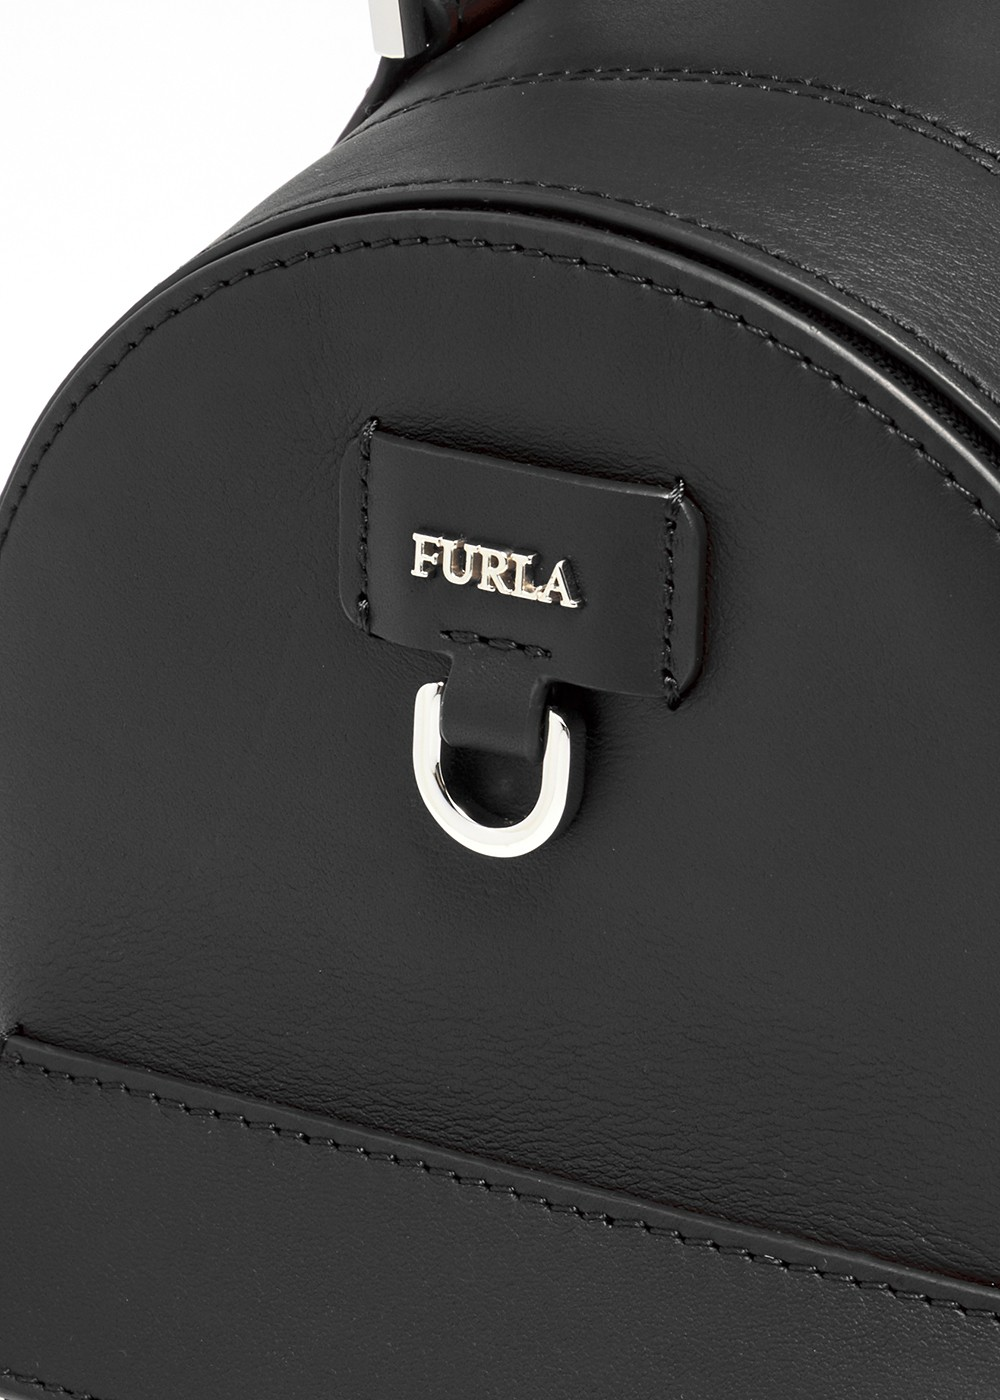 【最大57%OFF】【FURLA】FURLA FAVOLAミニバッグ|ONYX|リュック|2019 SPRING & SUMMER NEW ARRIVAL COLLECTION